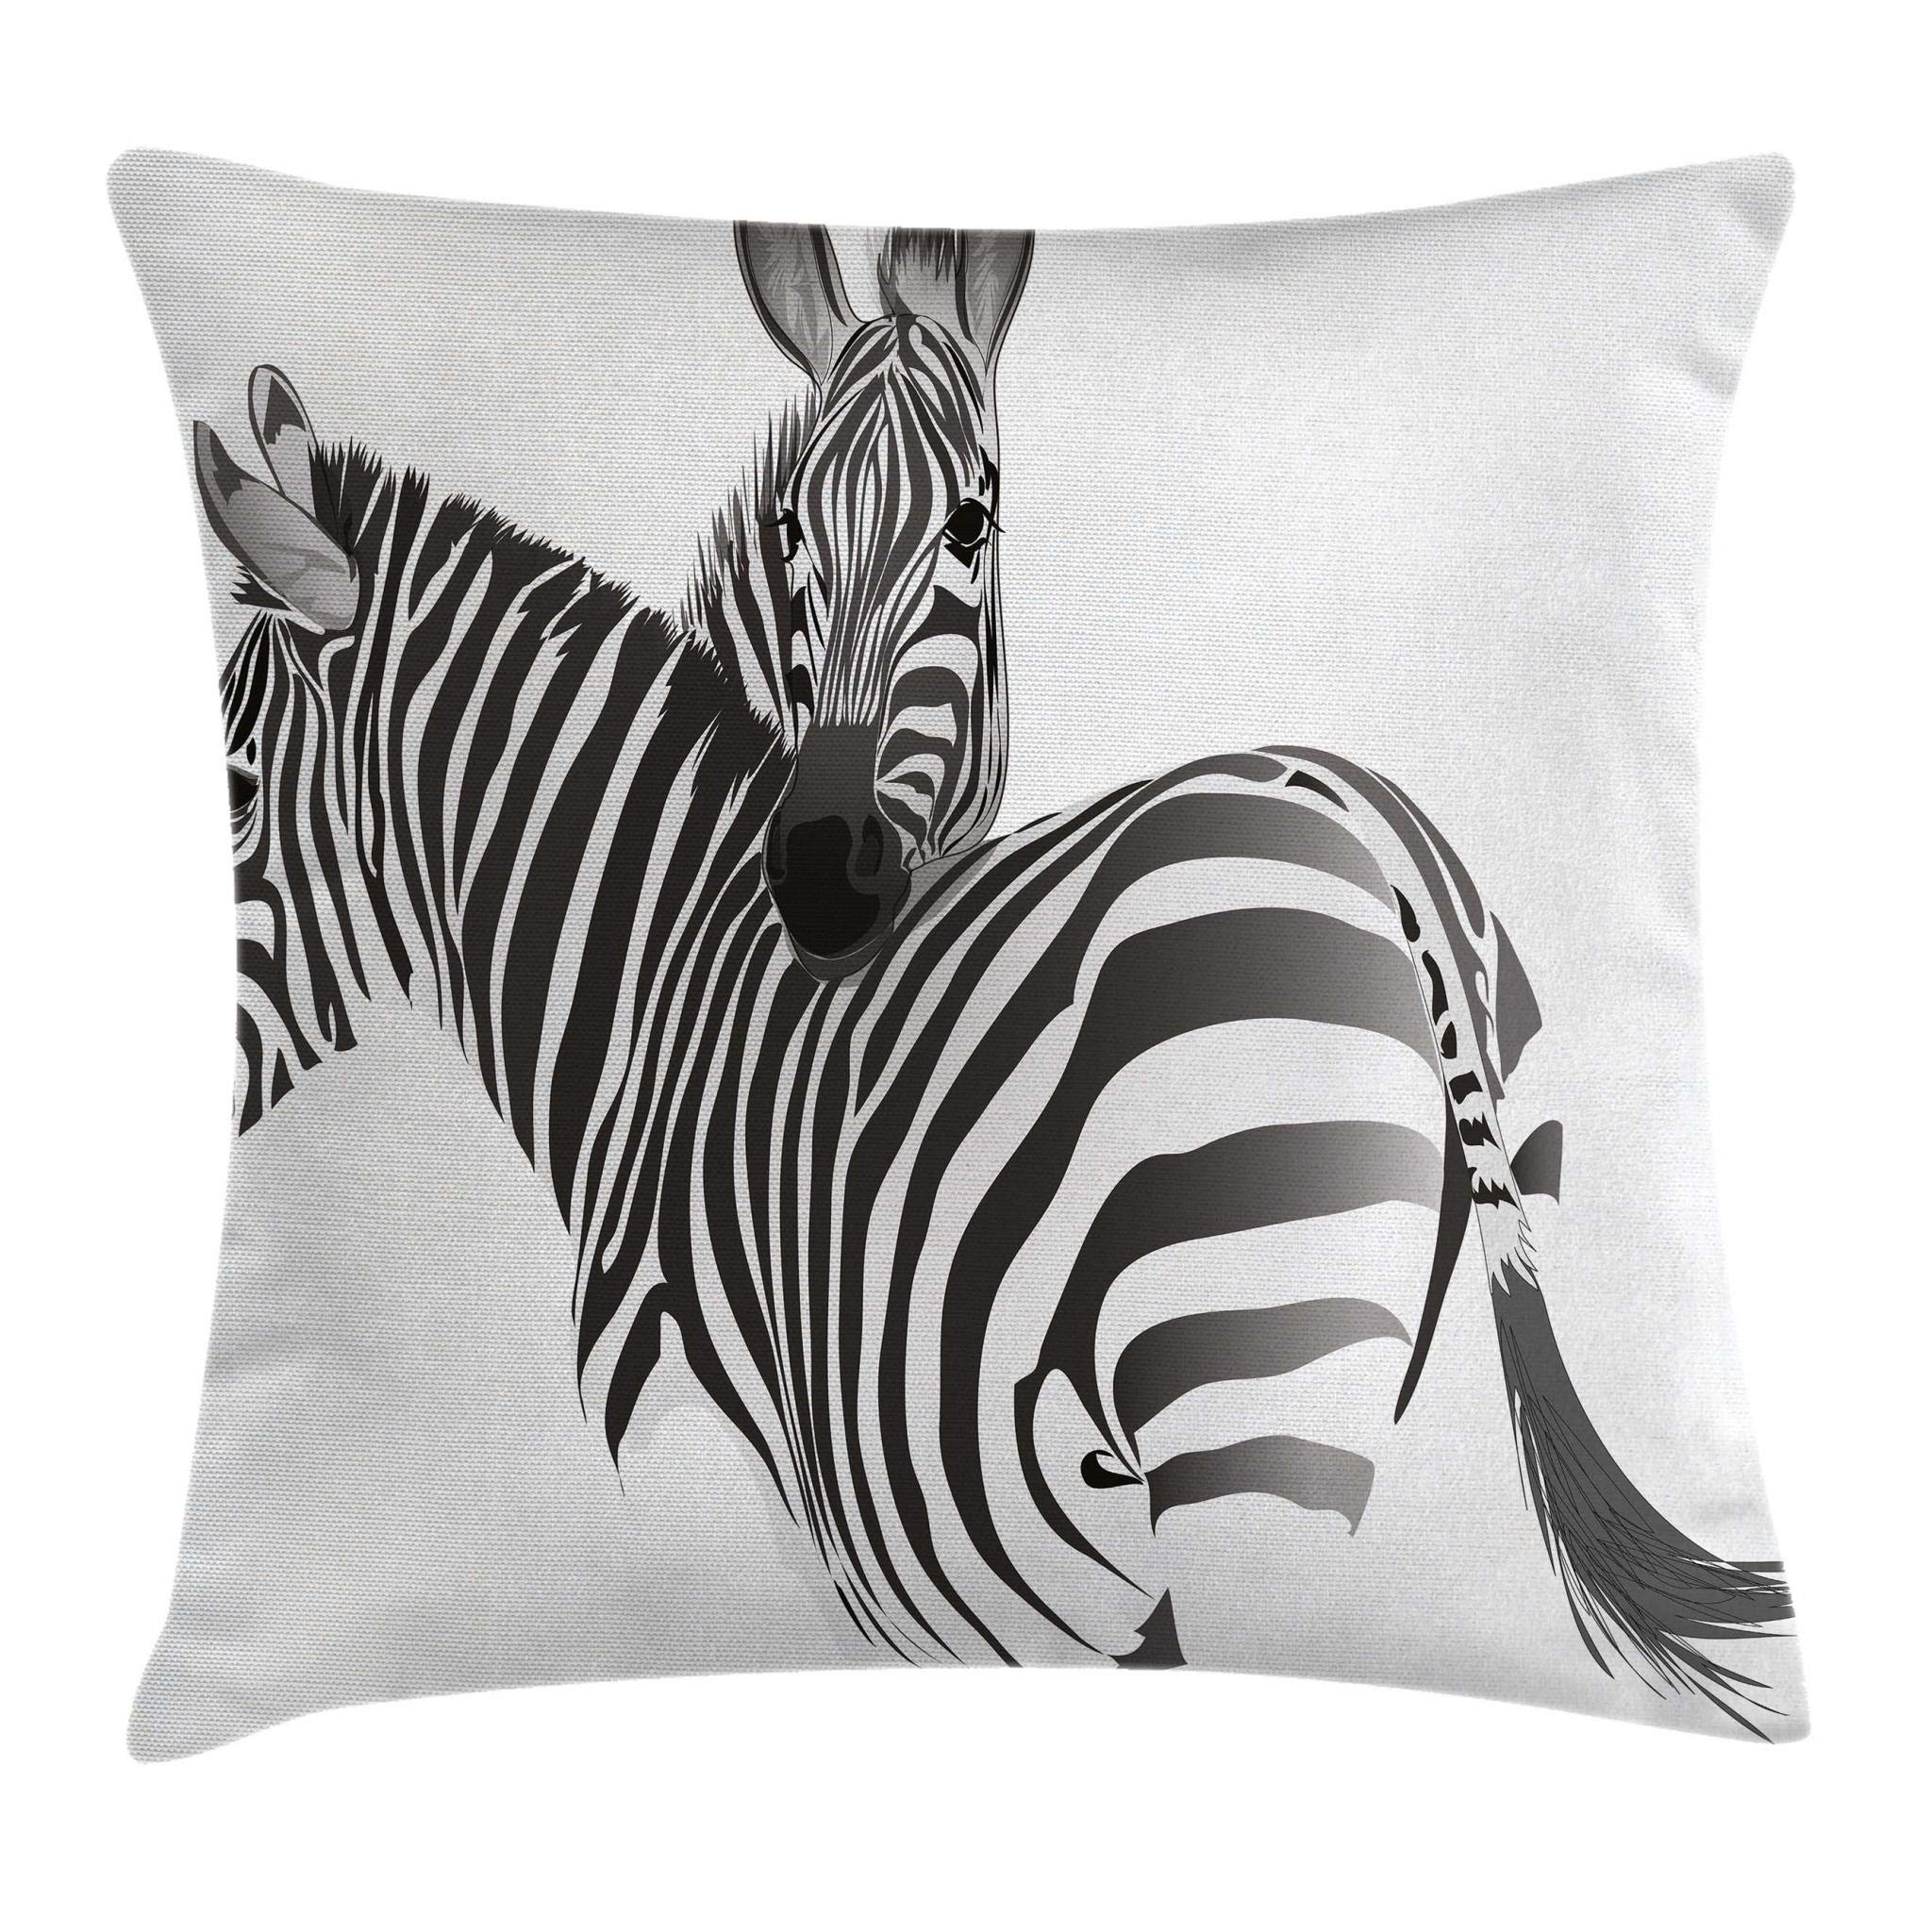 Ambesonne Zebra Throw Pillow Cushion Cover by, African Animals Cute Couple Safari Theme Savannah Jungle Camouflage Zoo Exotic Horse, Decorative Square Accent Pillow Case, 16 X 16 Inches, Black White